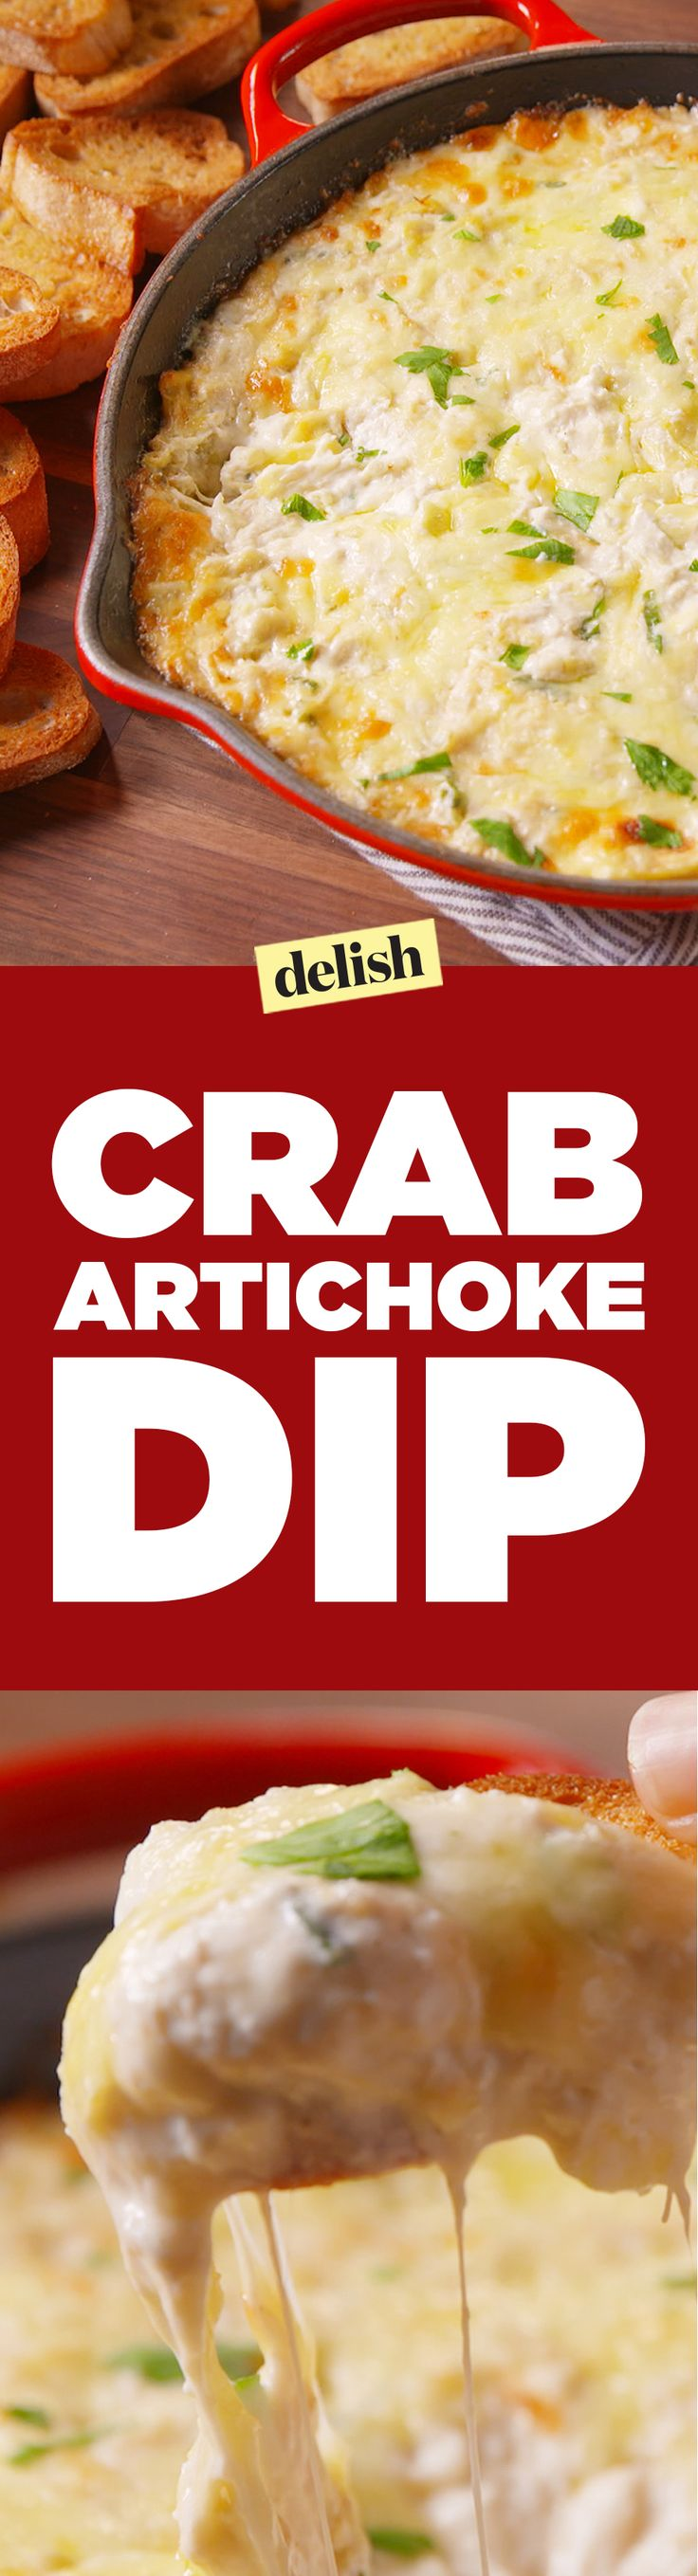 Crab & Artichoke Dip is so good, you might lick the skillet. Get the recipe on Delish.com.